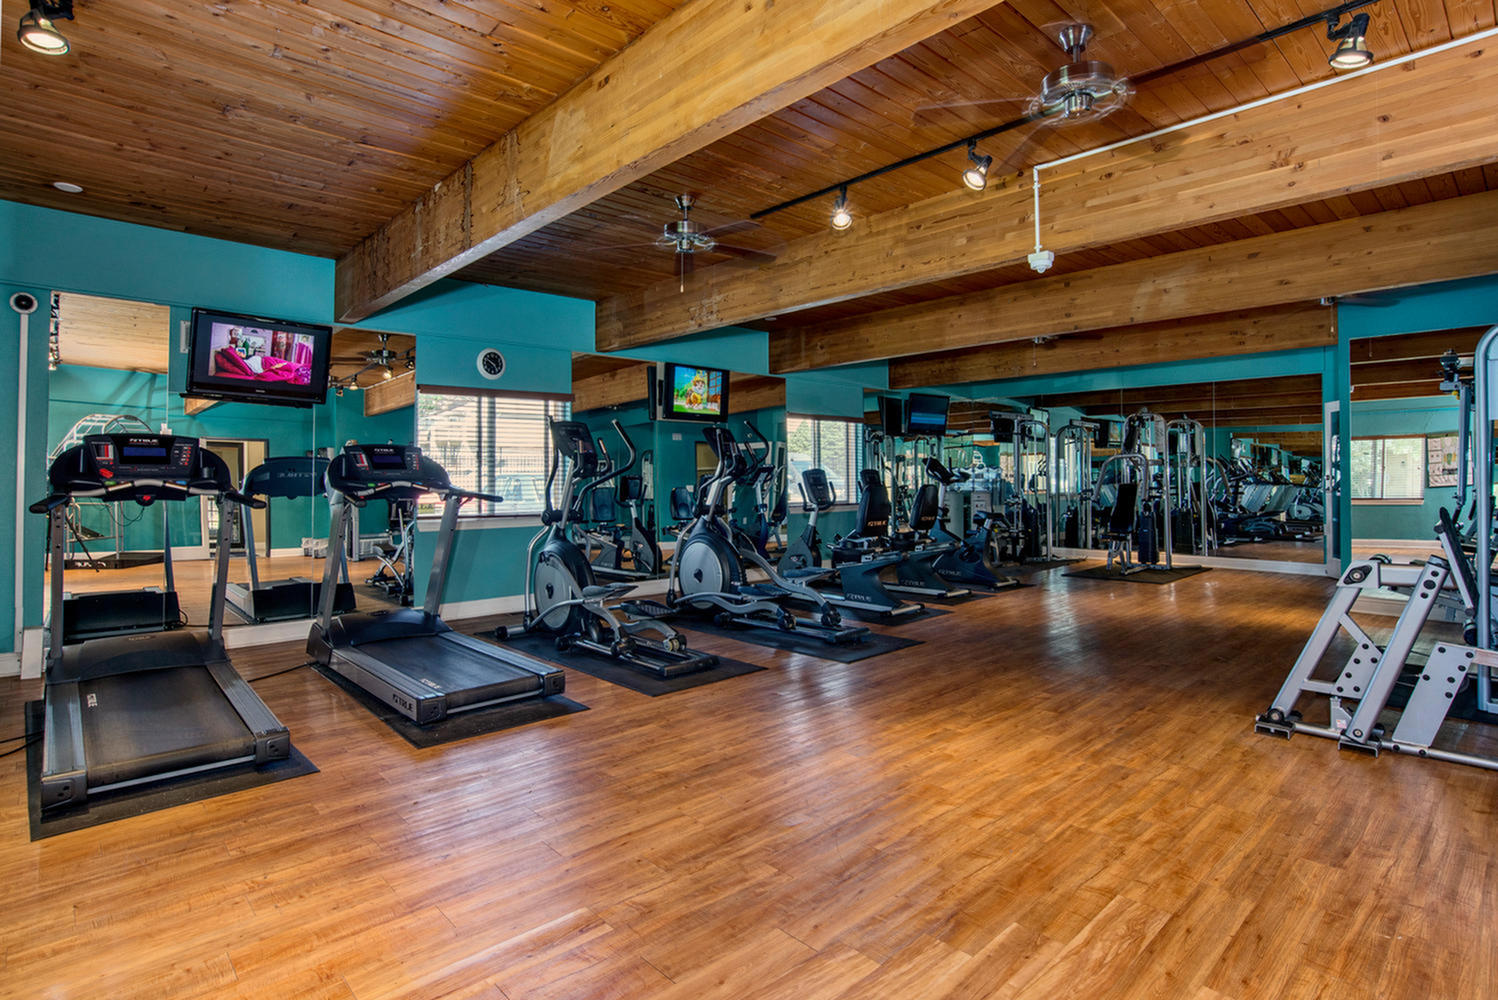 Image of Fitness Center for Landon Park Apartments